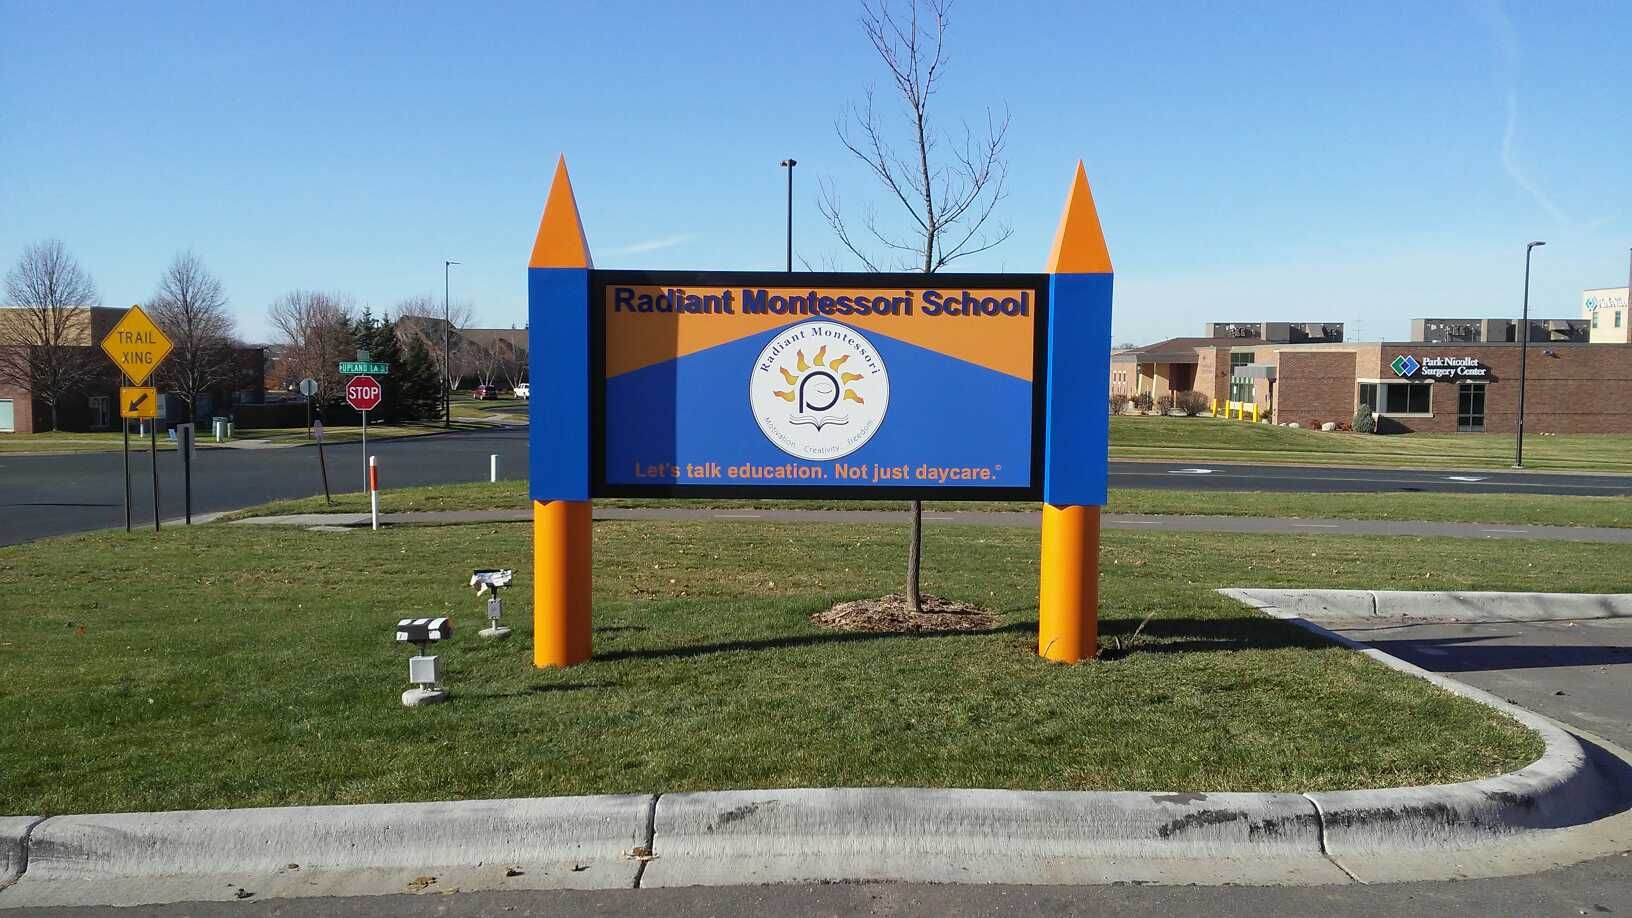 Daycare sign for a local Montessori School adds a creative twist to the sign poles!